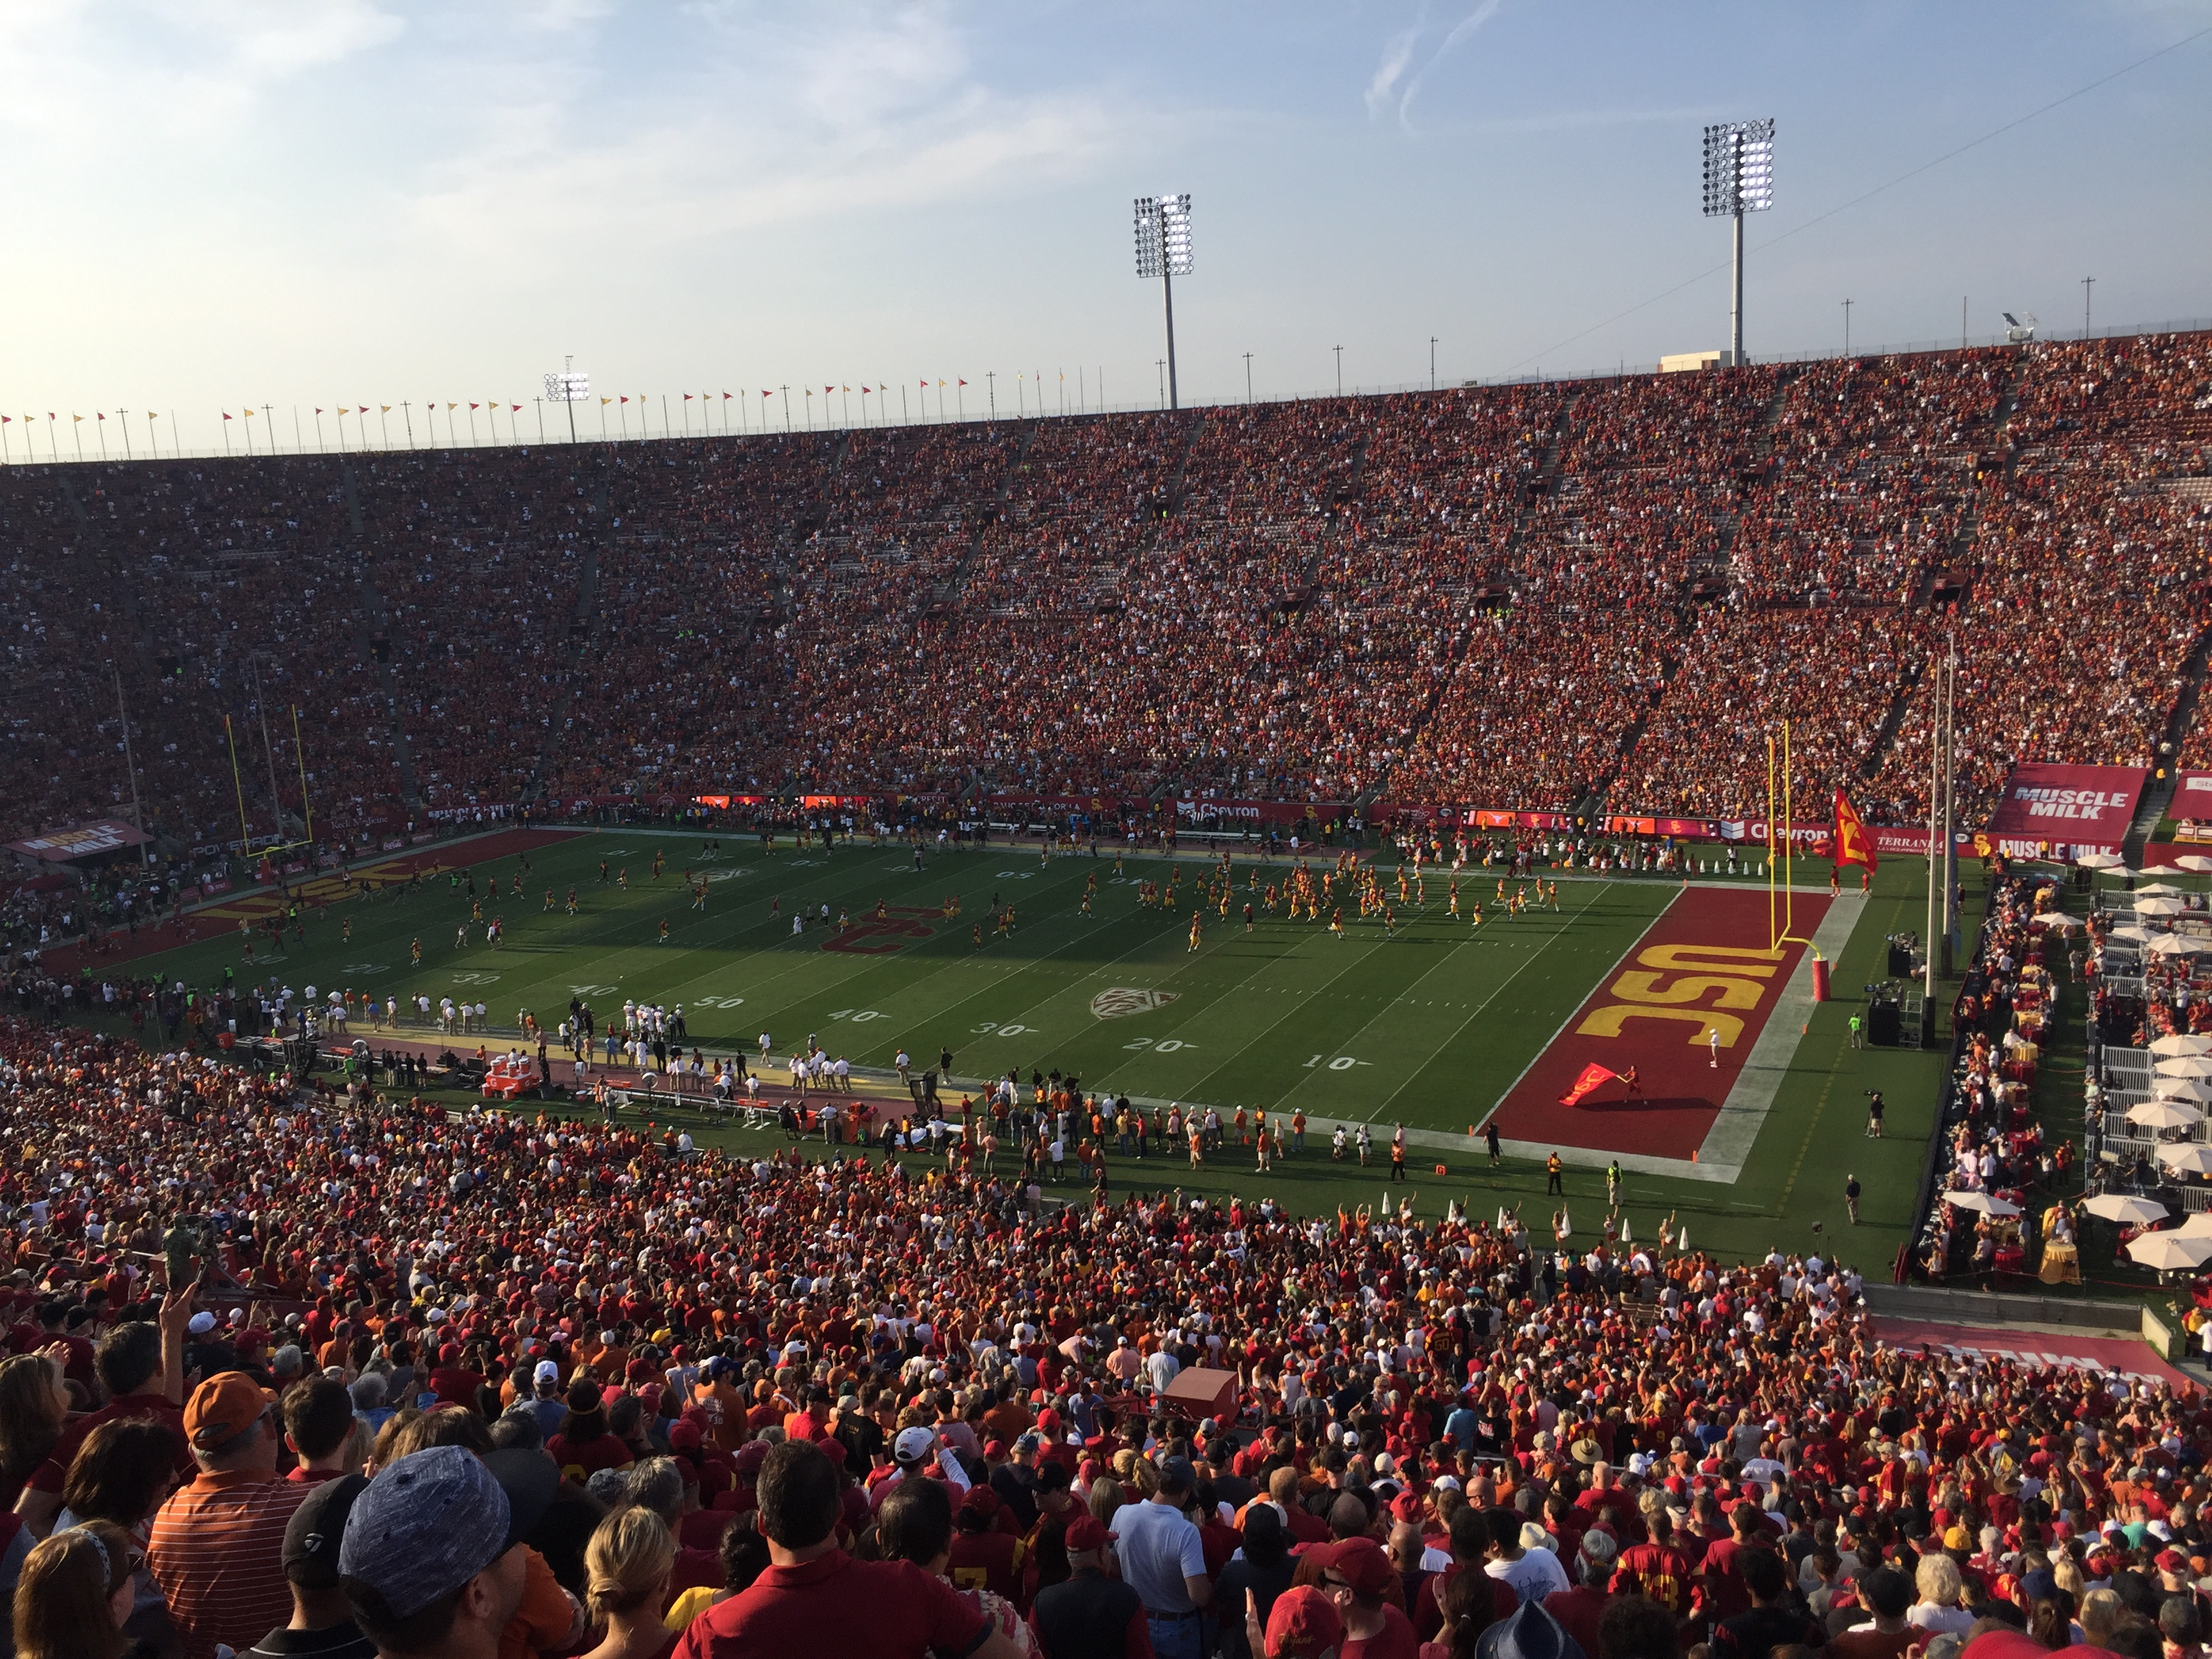 A weekend getaway in Los Angeles, including the USC vs. UT Game